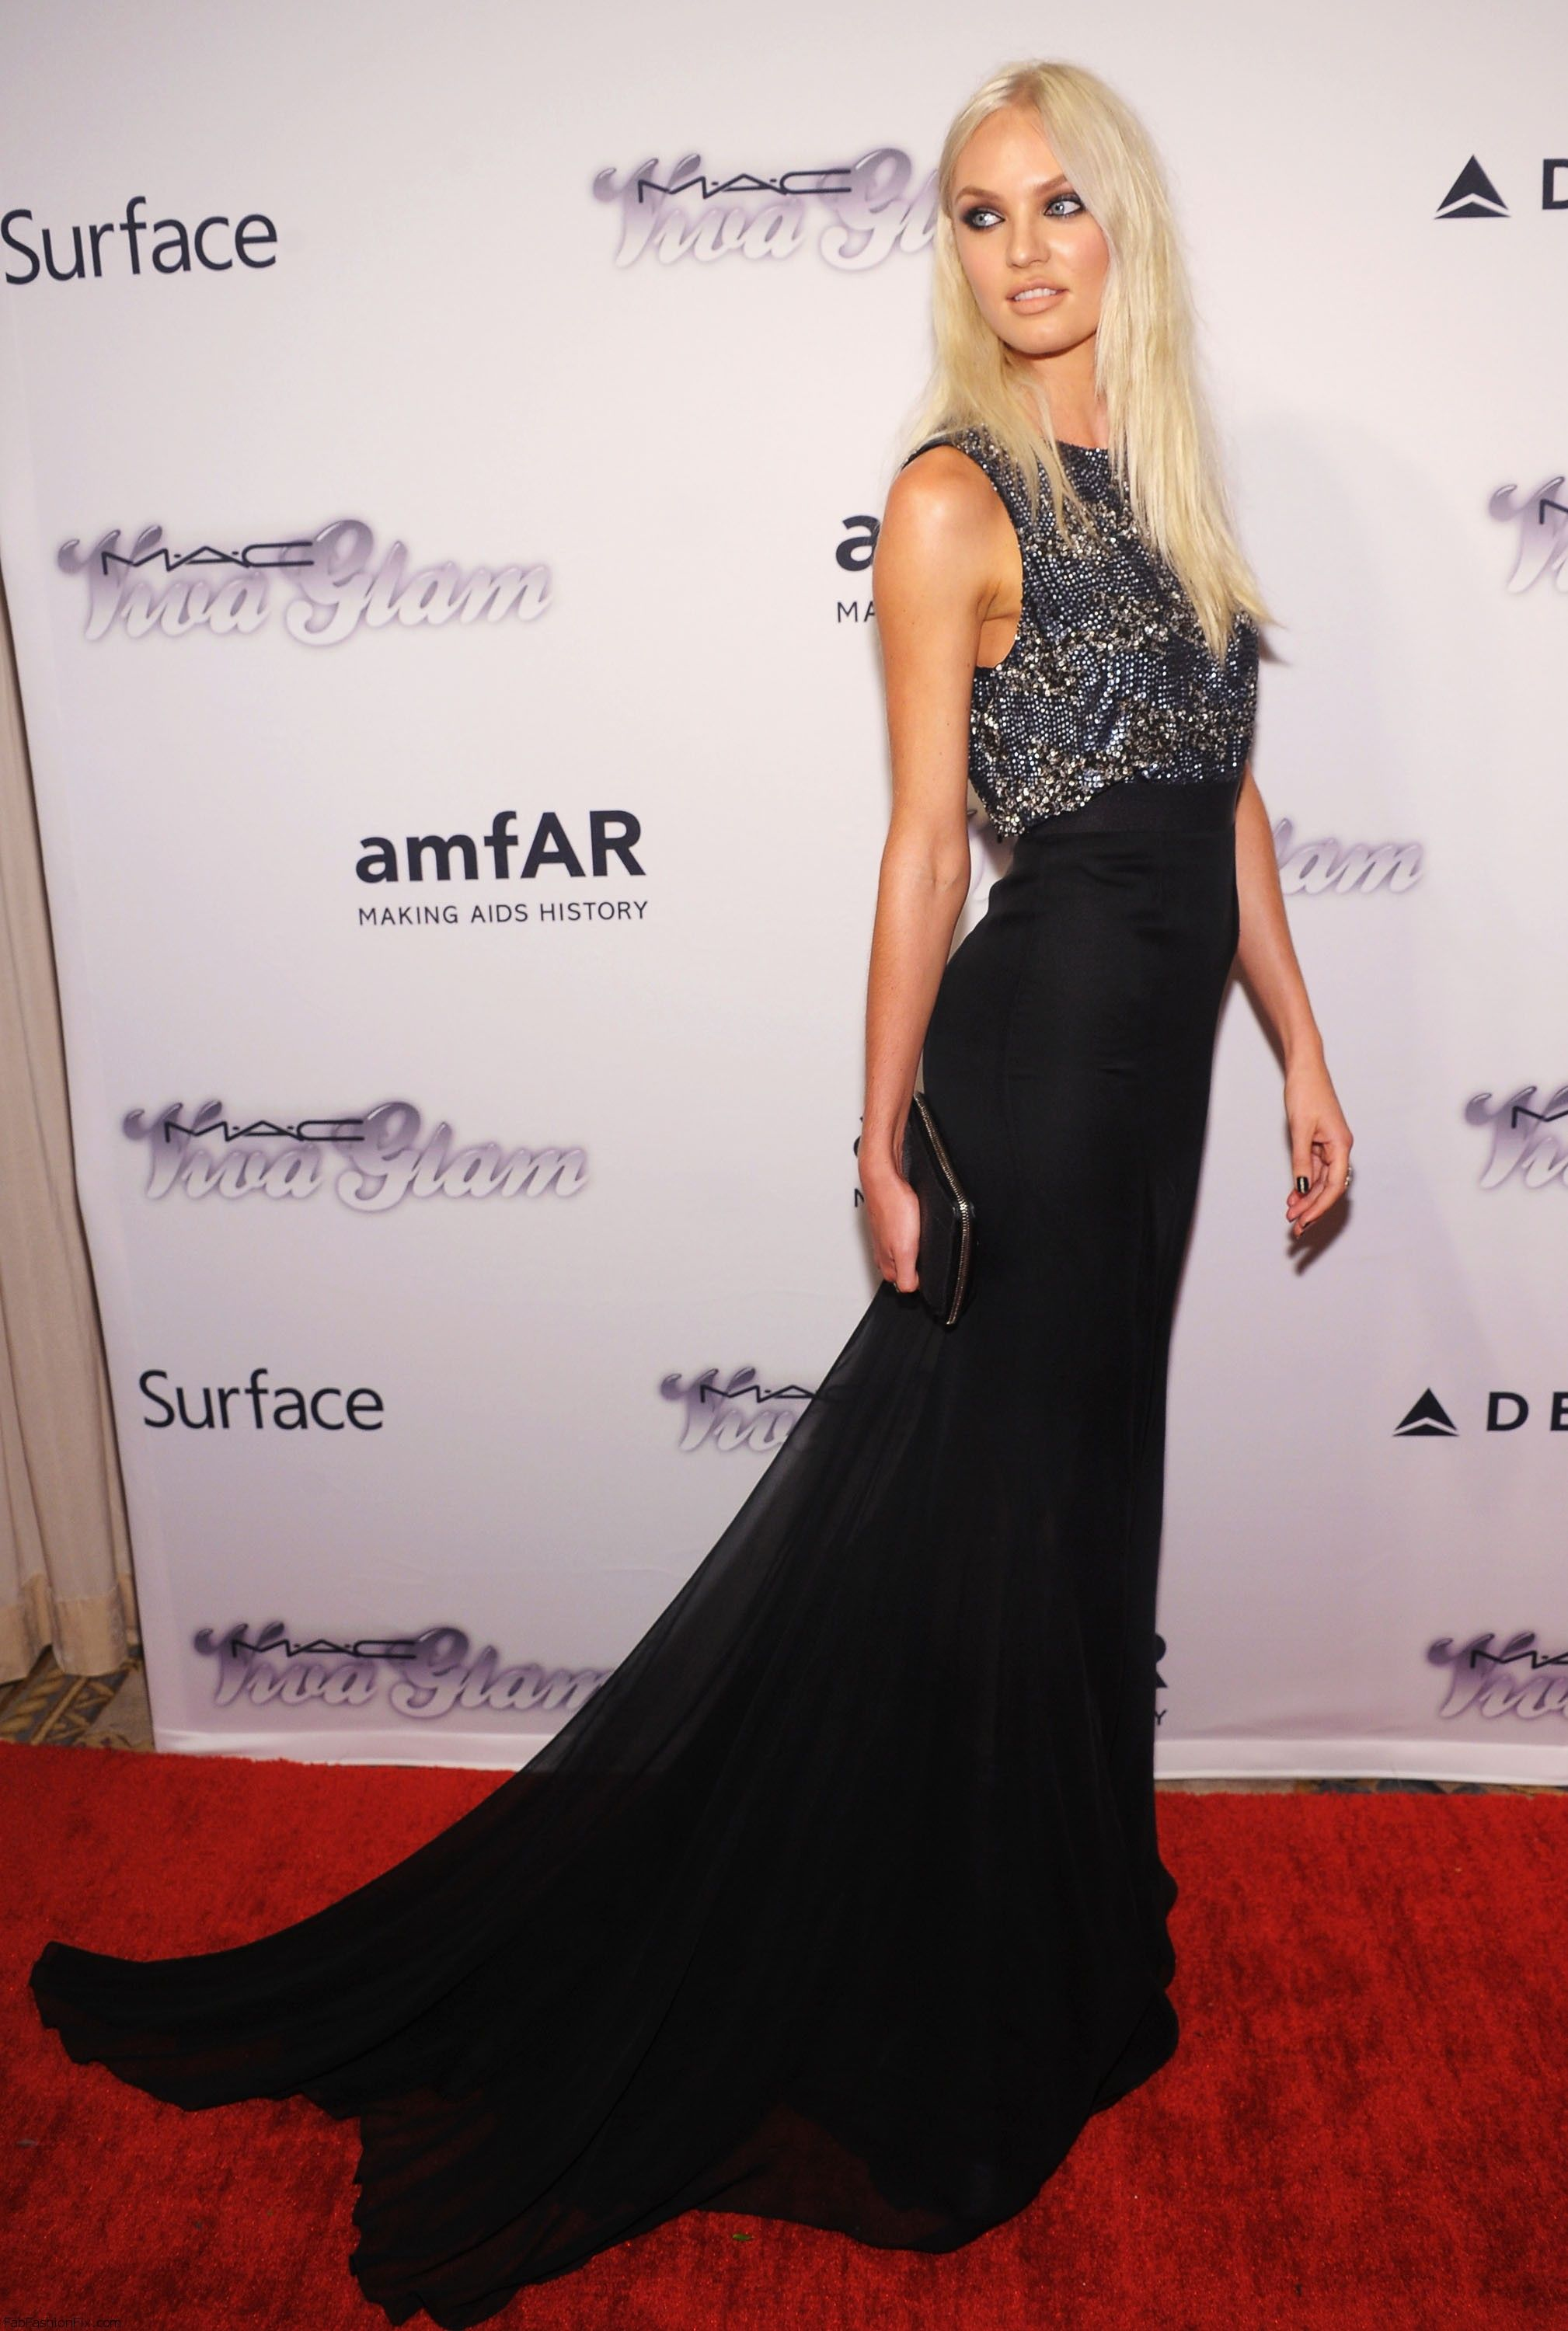 4th Annual amfAR Inspiration Gala New York - Arrivals